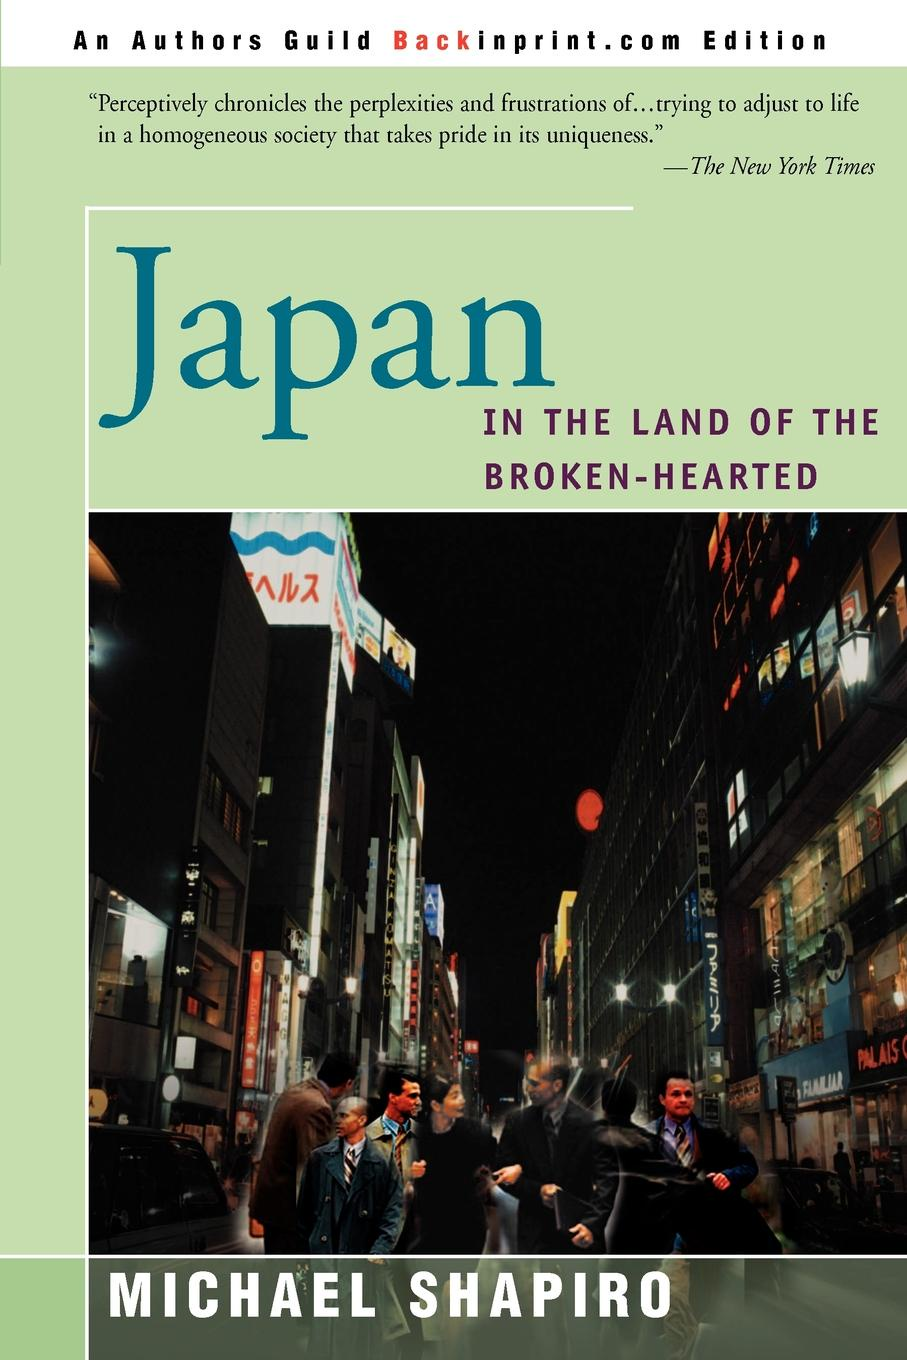 Japan. In the Land of the Broken-Hearted. Michael Shapiro